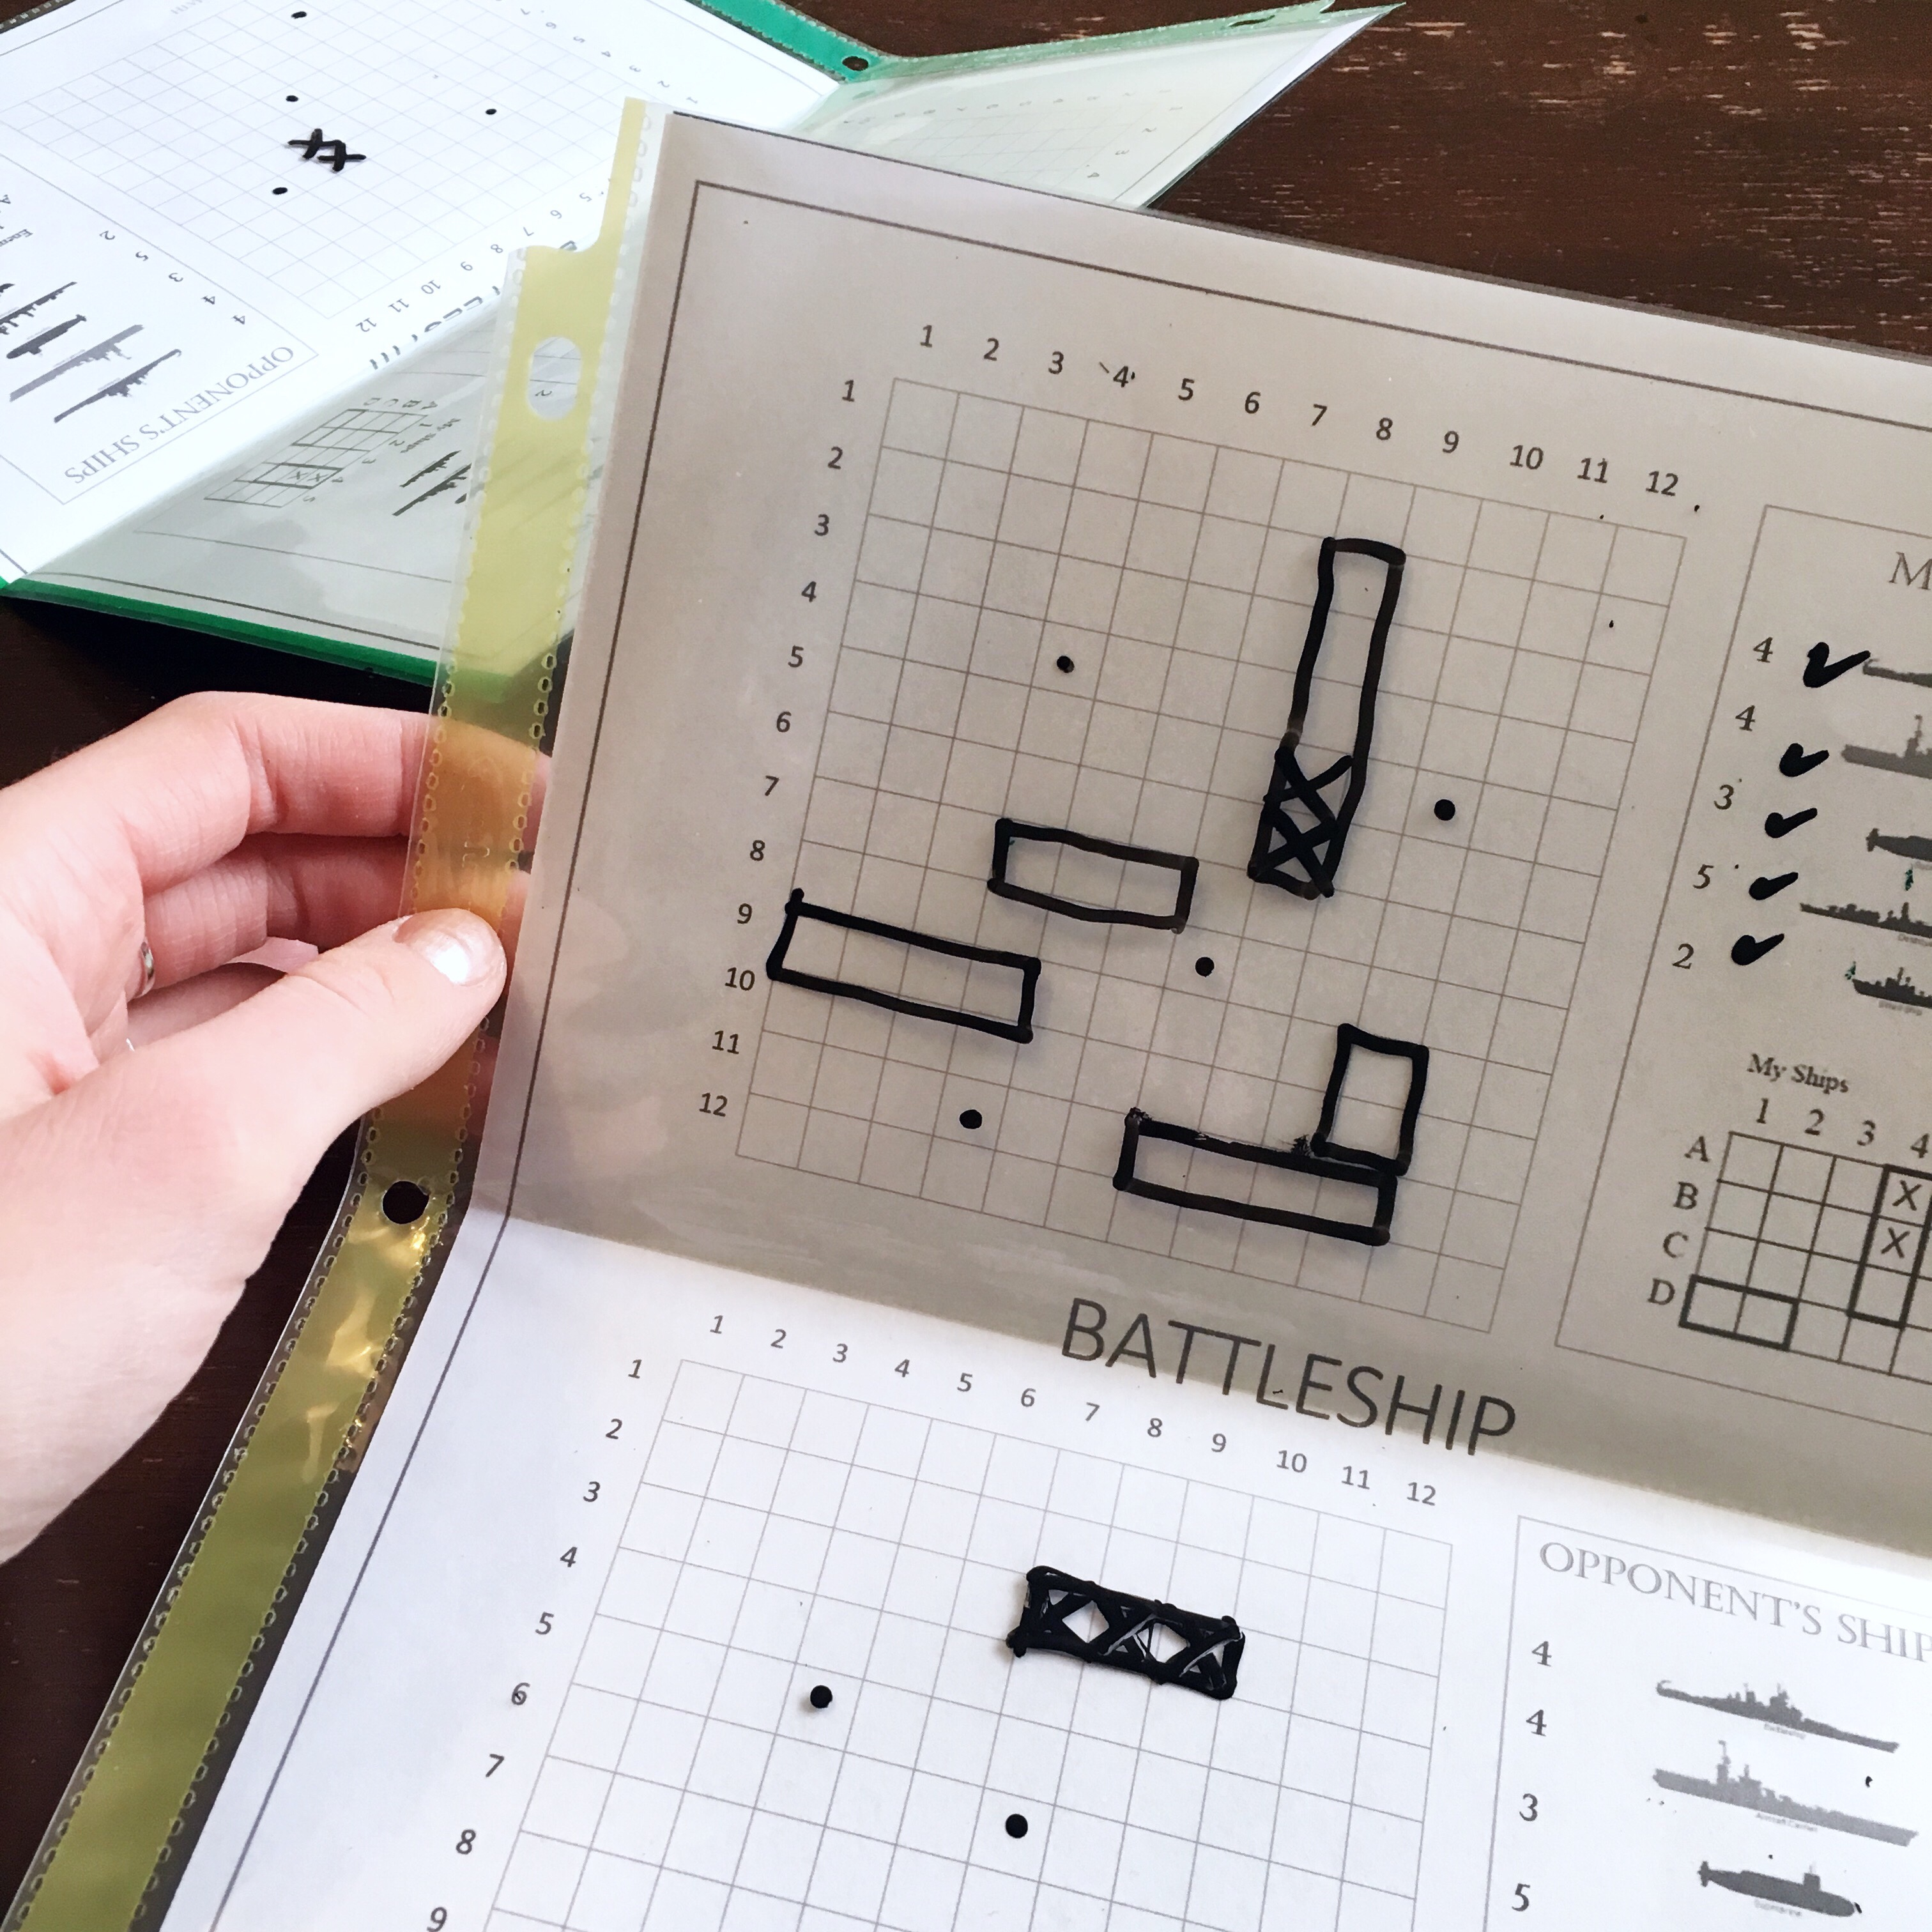 graphic about Printable Battleship Game identified as enterprise Printable Battleship Math match for mastering